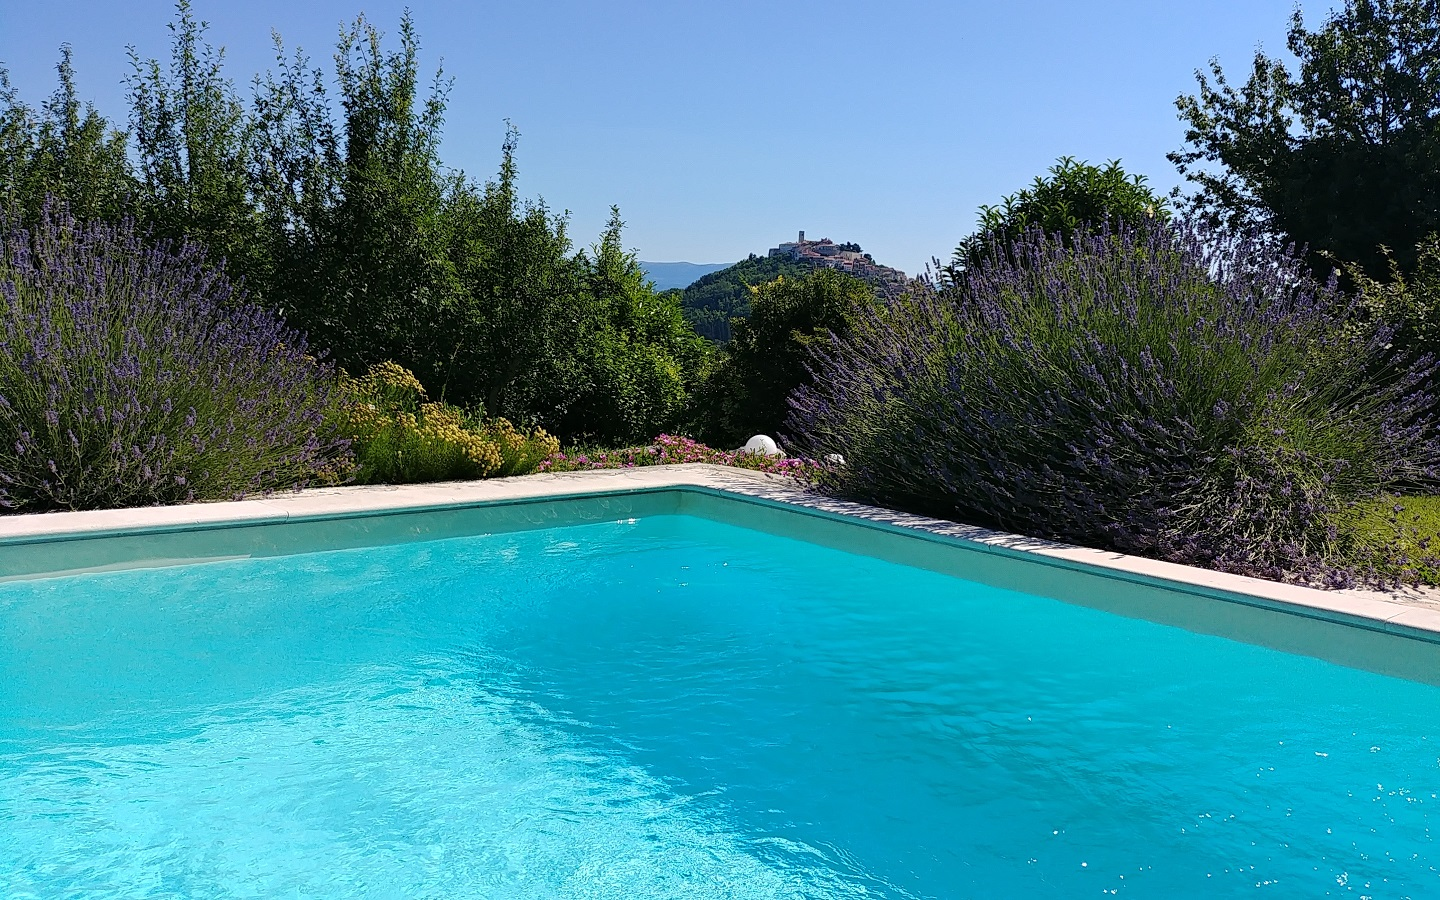 stancija scodanella ferienhaus mit pool bei motovun. Black Bedroom Furniture Sets. Home Design Ideas